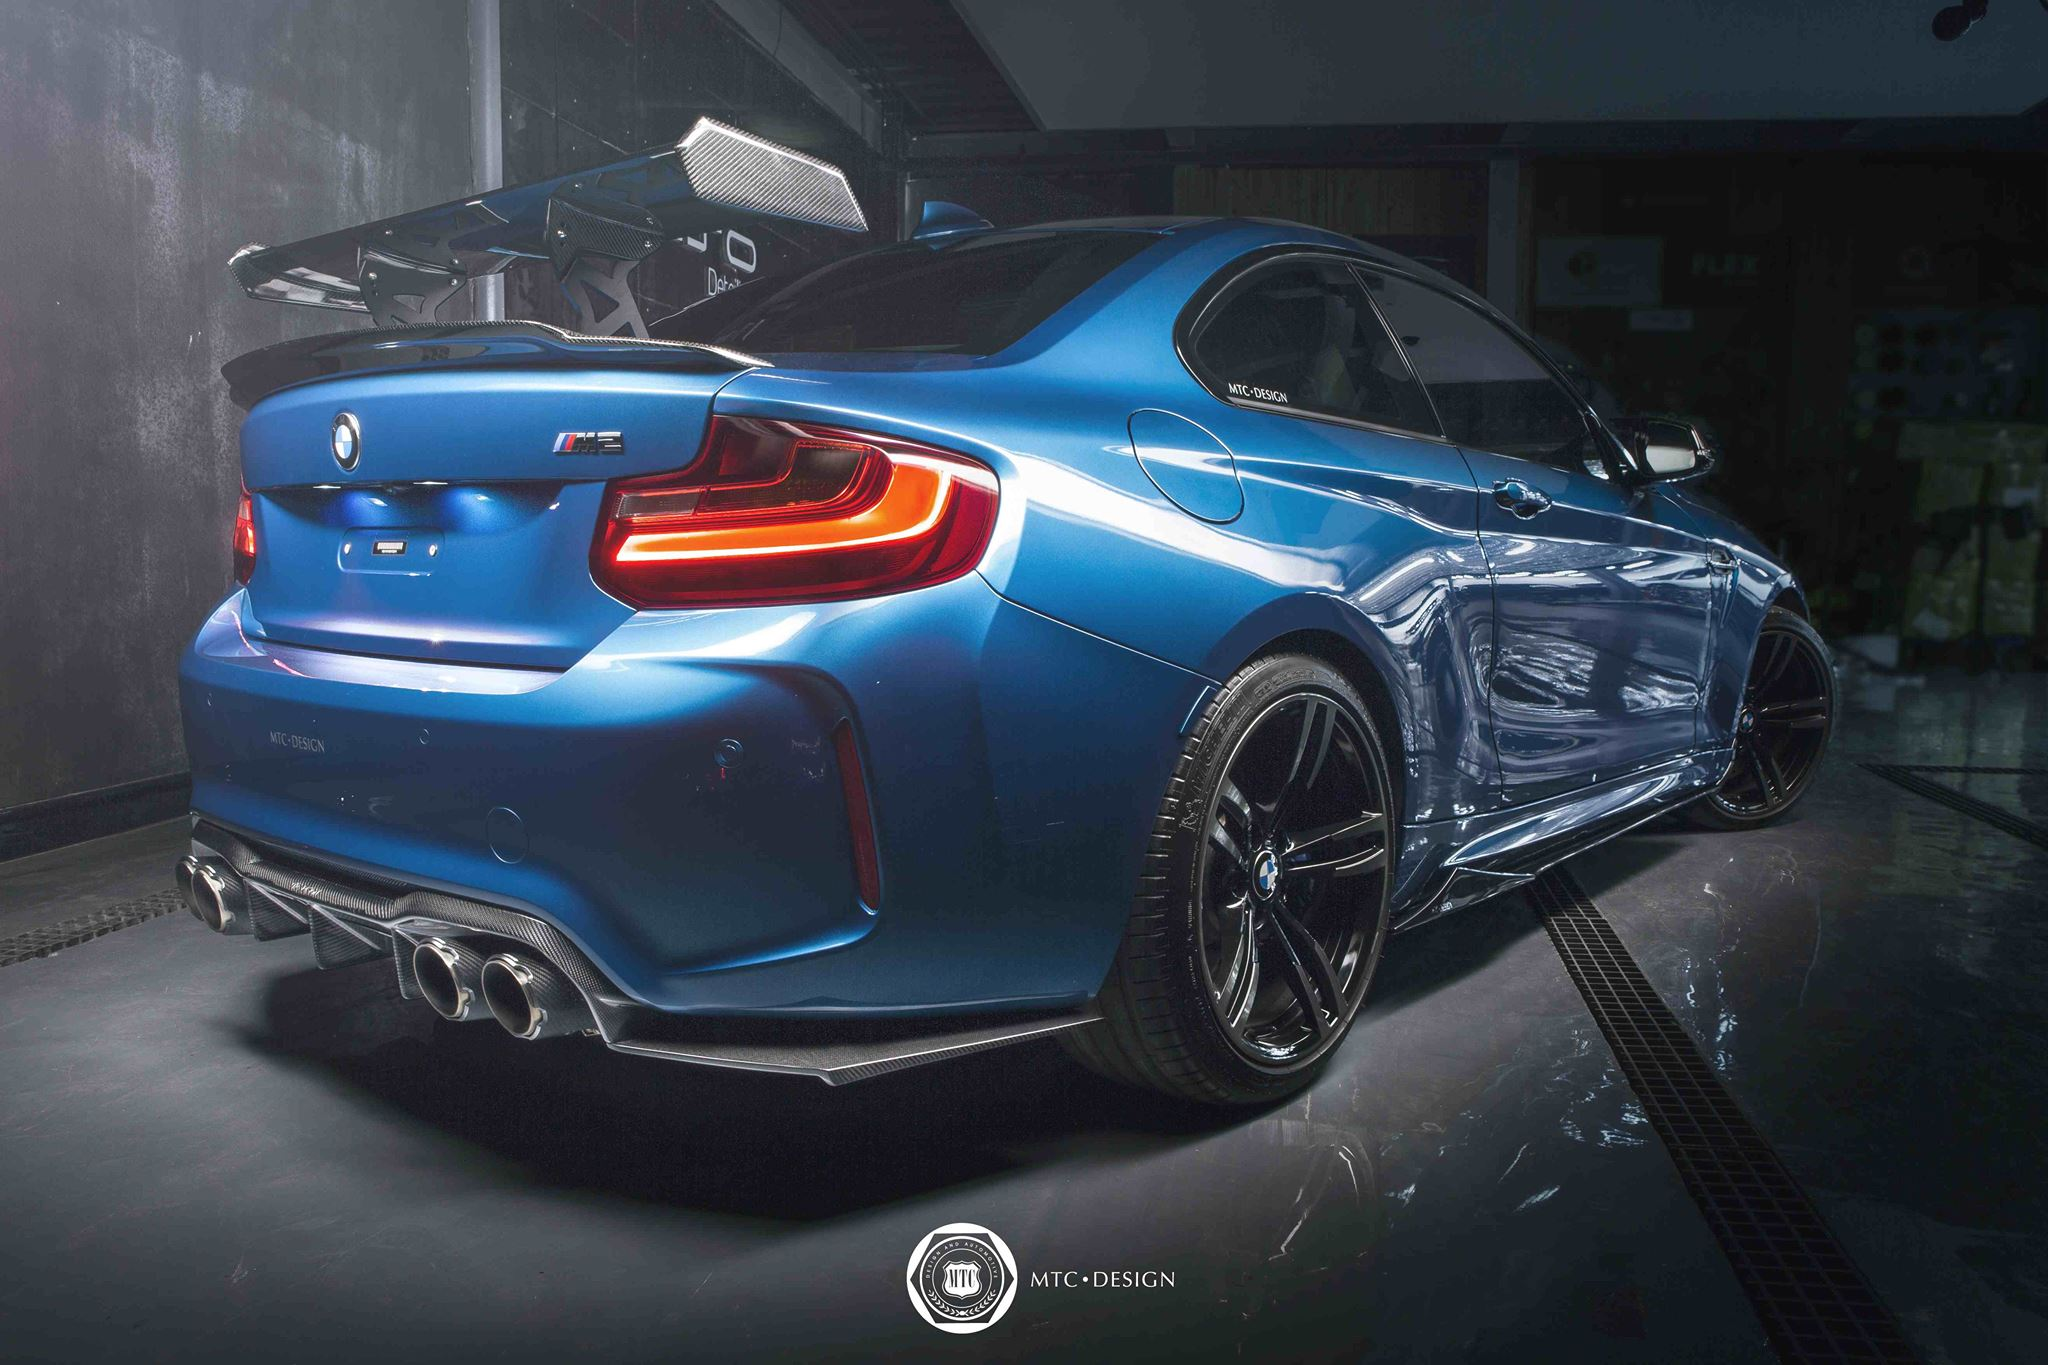 Mtc Design Gives This Bmw M2 A Racing Ready Look